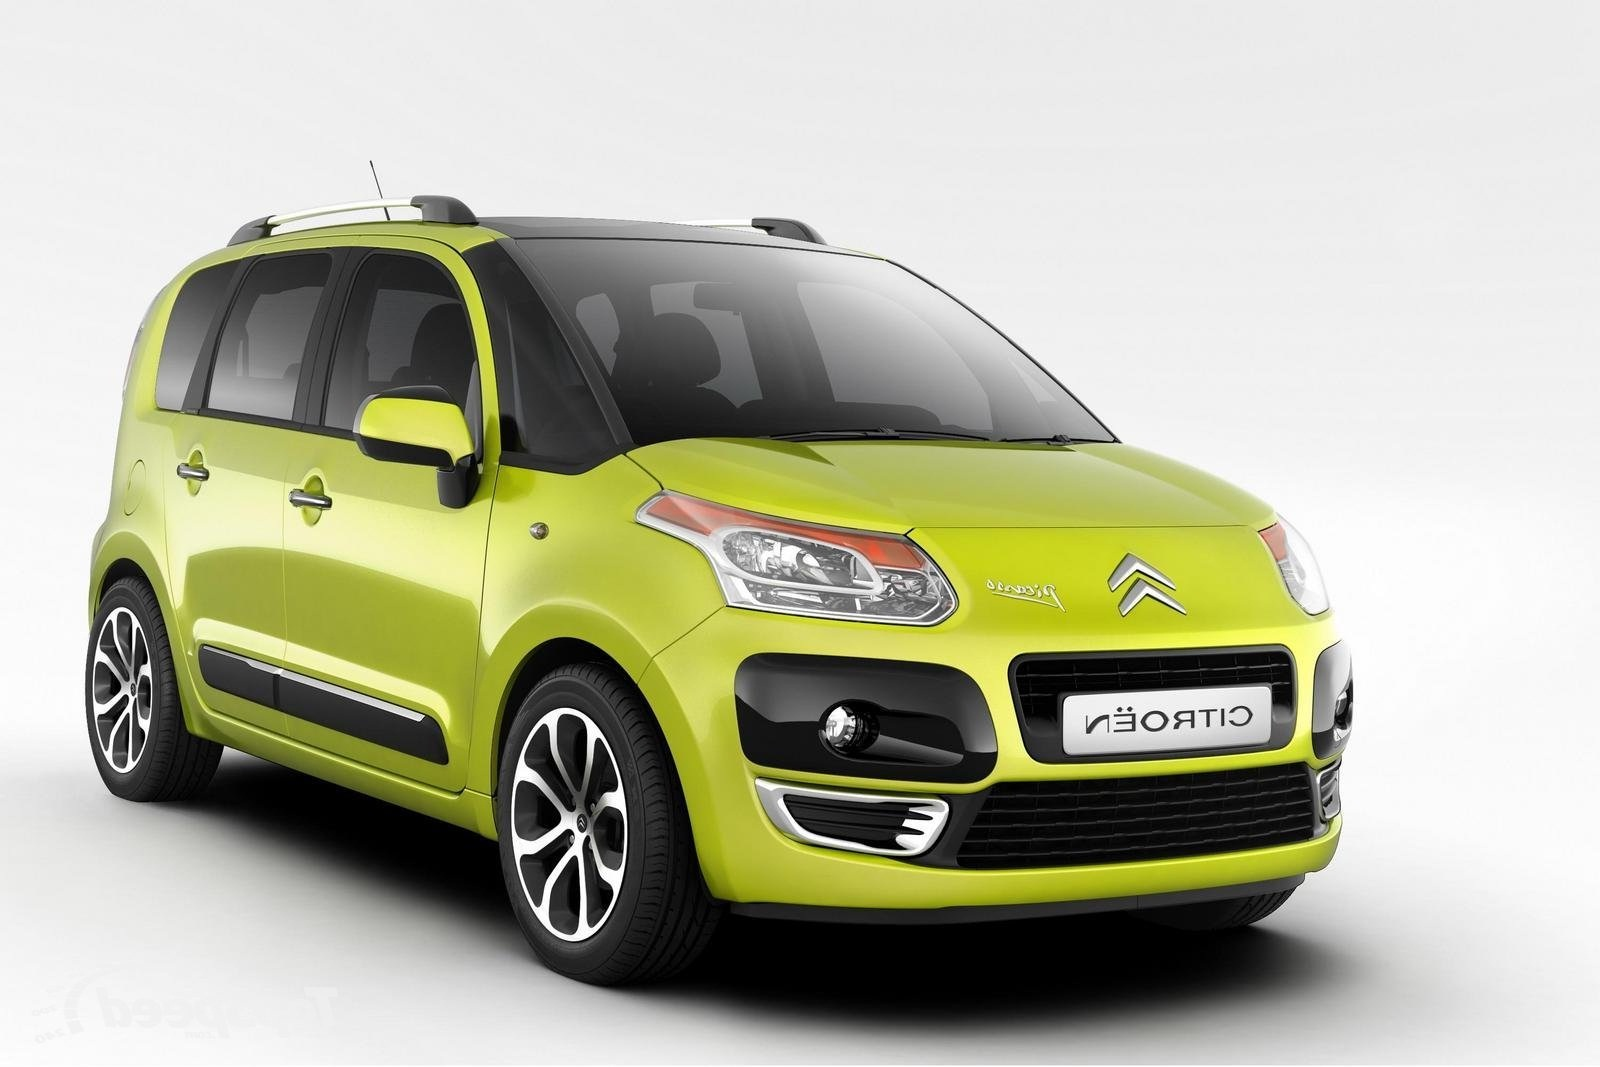 hd wallpapers desktop wallpapers 1080p 2009 citroen c3 picasso wallpapers. Black Bedroom Furniture Sets. Home Design Ideas